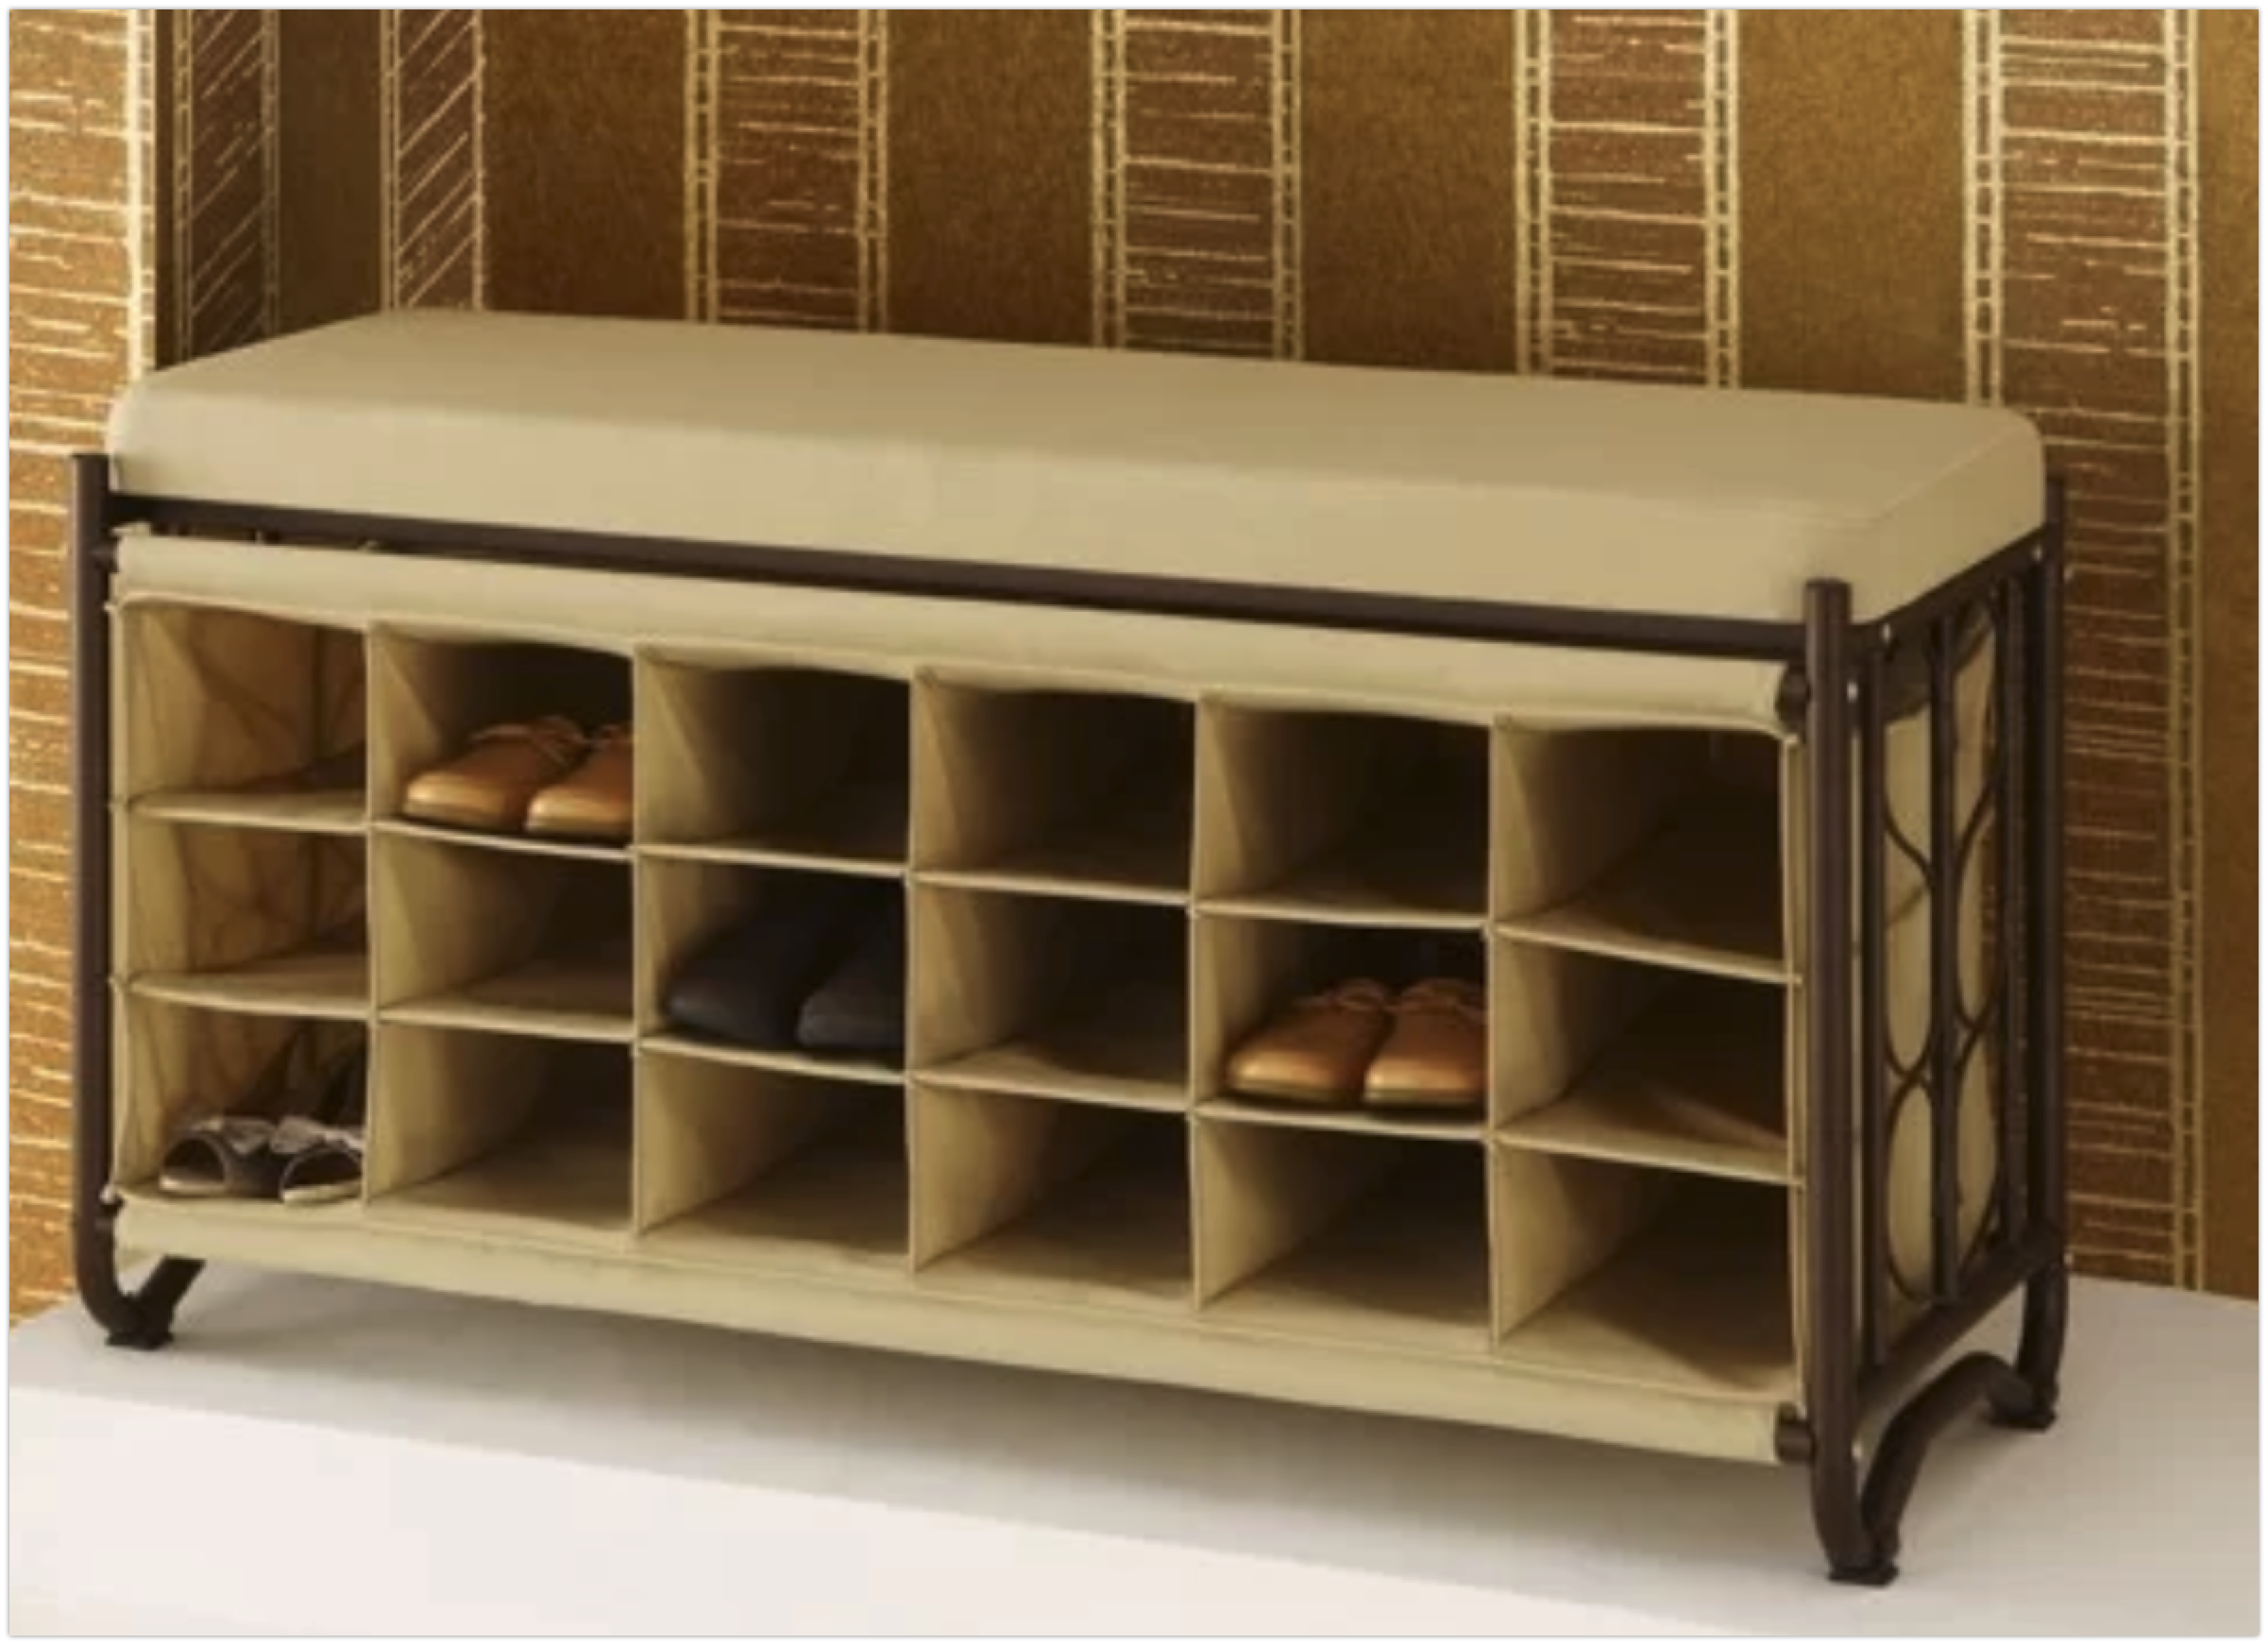 upholstered-storage-bench